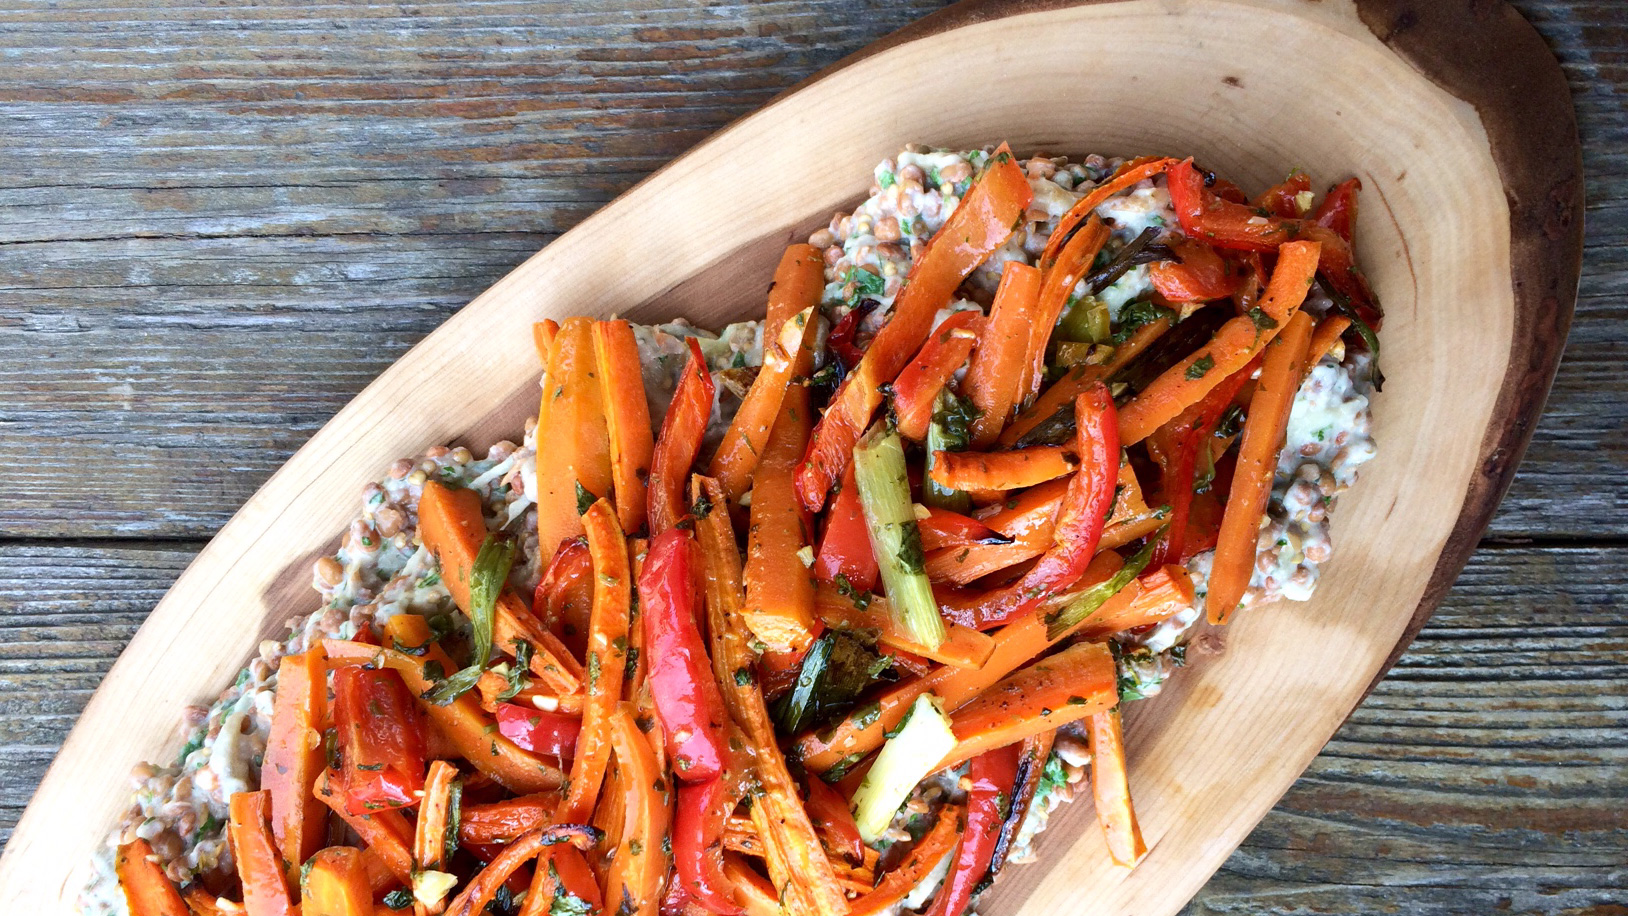 Shredded roasted carrot and eggplant overtop lentils served in wooden platter